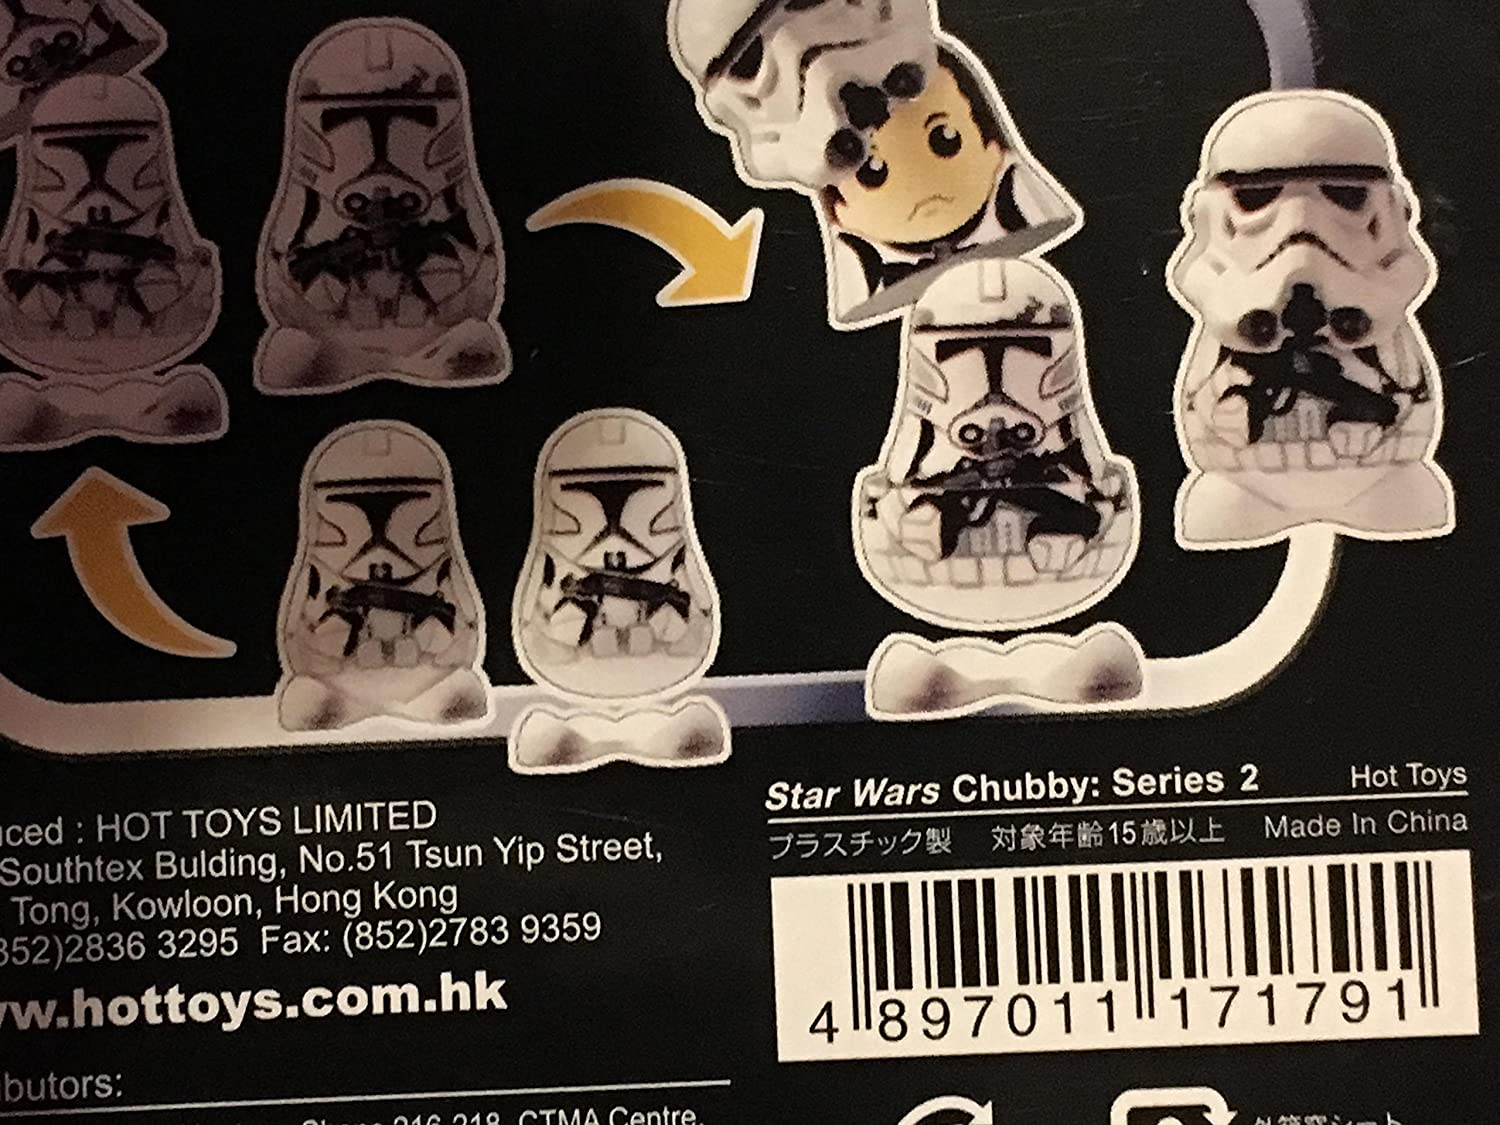 Star Troopers Wars Chubby Nesting Dolls Series 2-Shadow Troopers Star 61181a